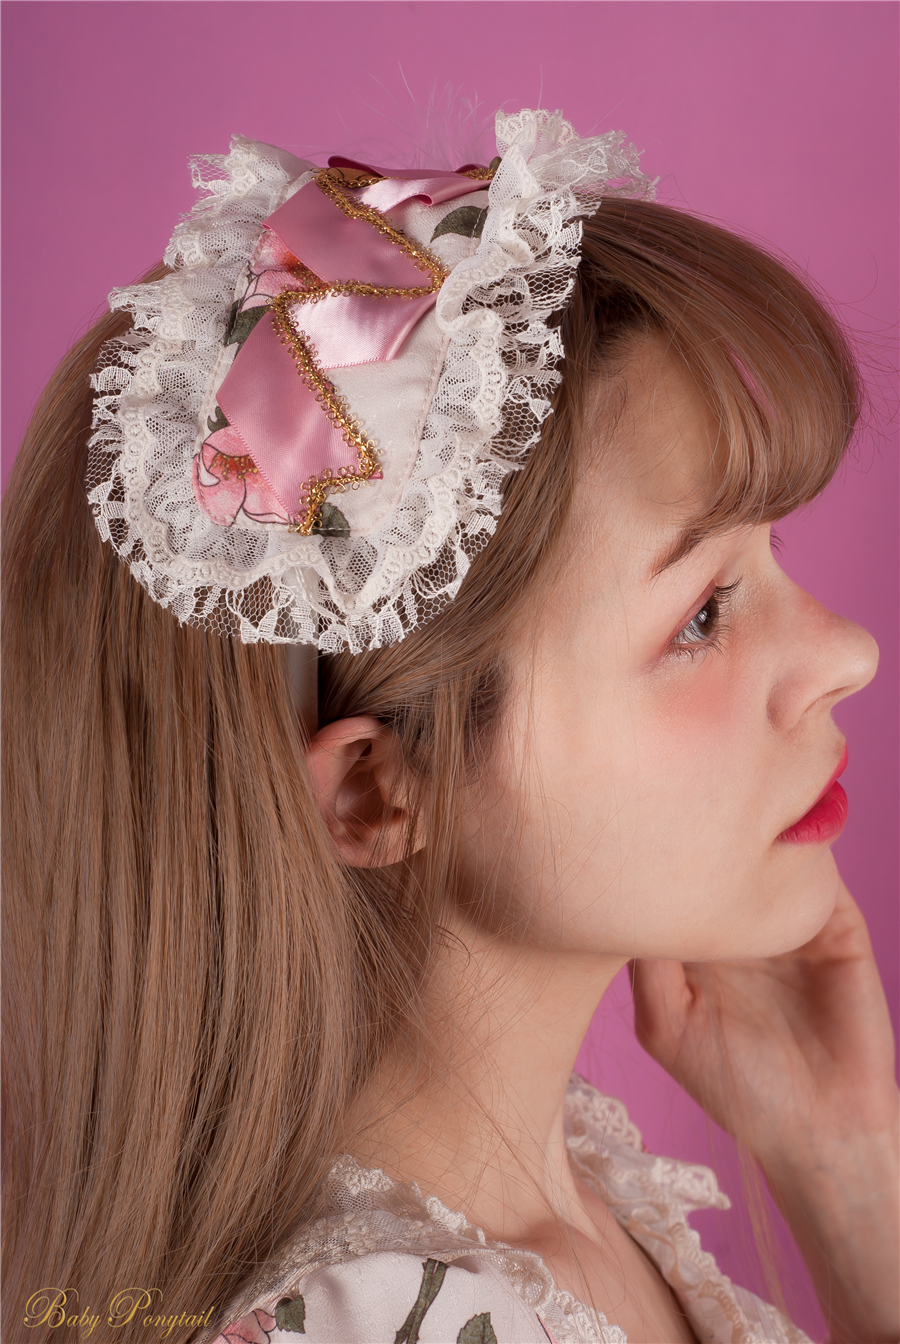 Baby Ponytail_Model Photo_Polly's Garden of Dreams_OP Ivory_Claudia_1.jpg